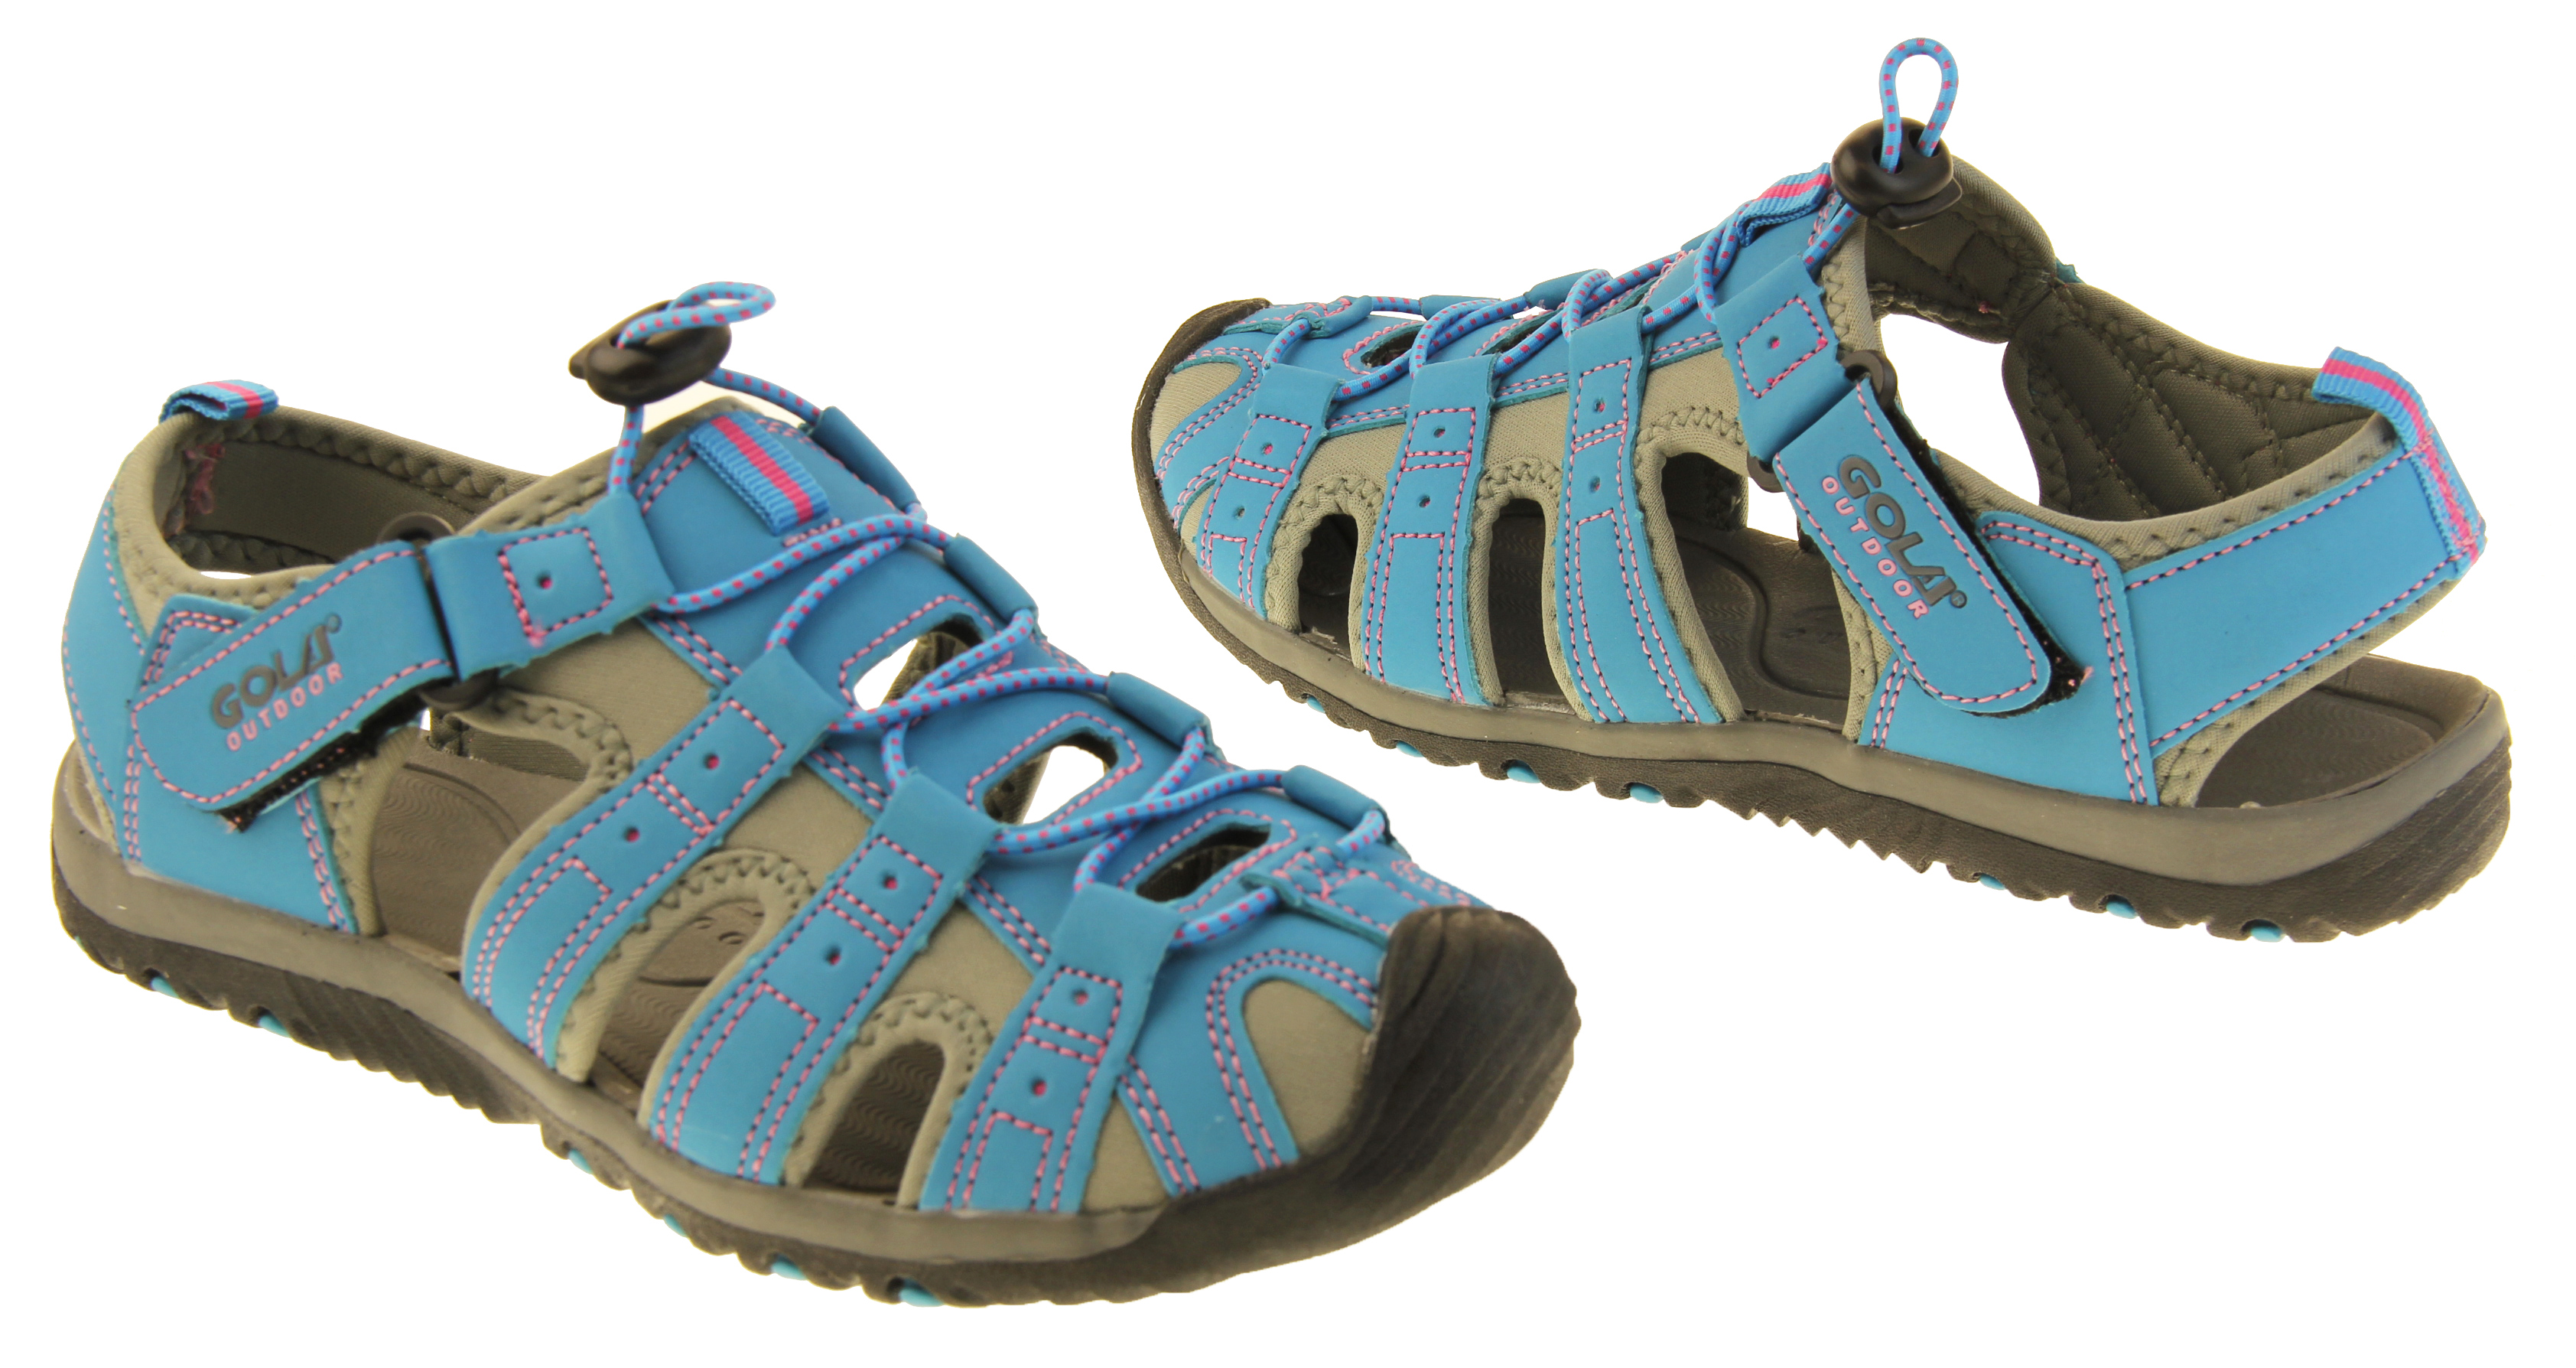 Ladies Outdoor Walking Sandals Womens Touch Fasten Summer Shoe Size 3 4 5 6 7 8